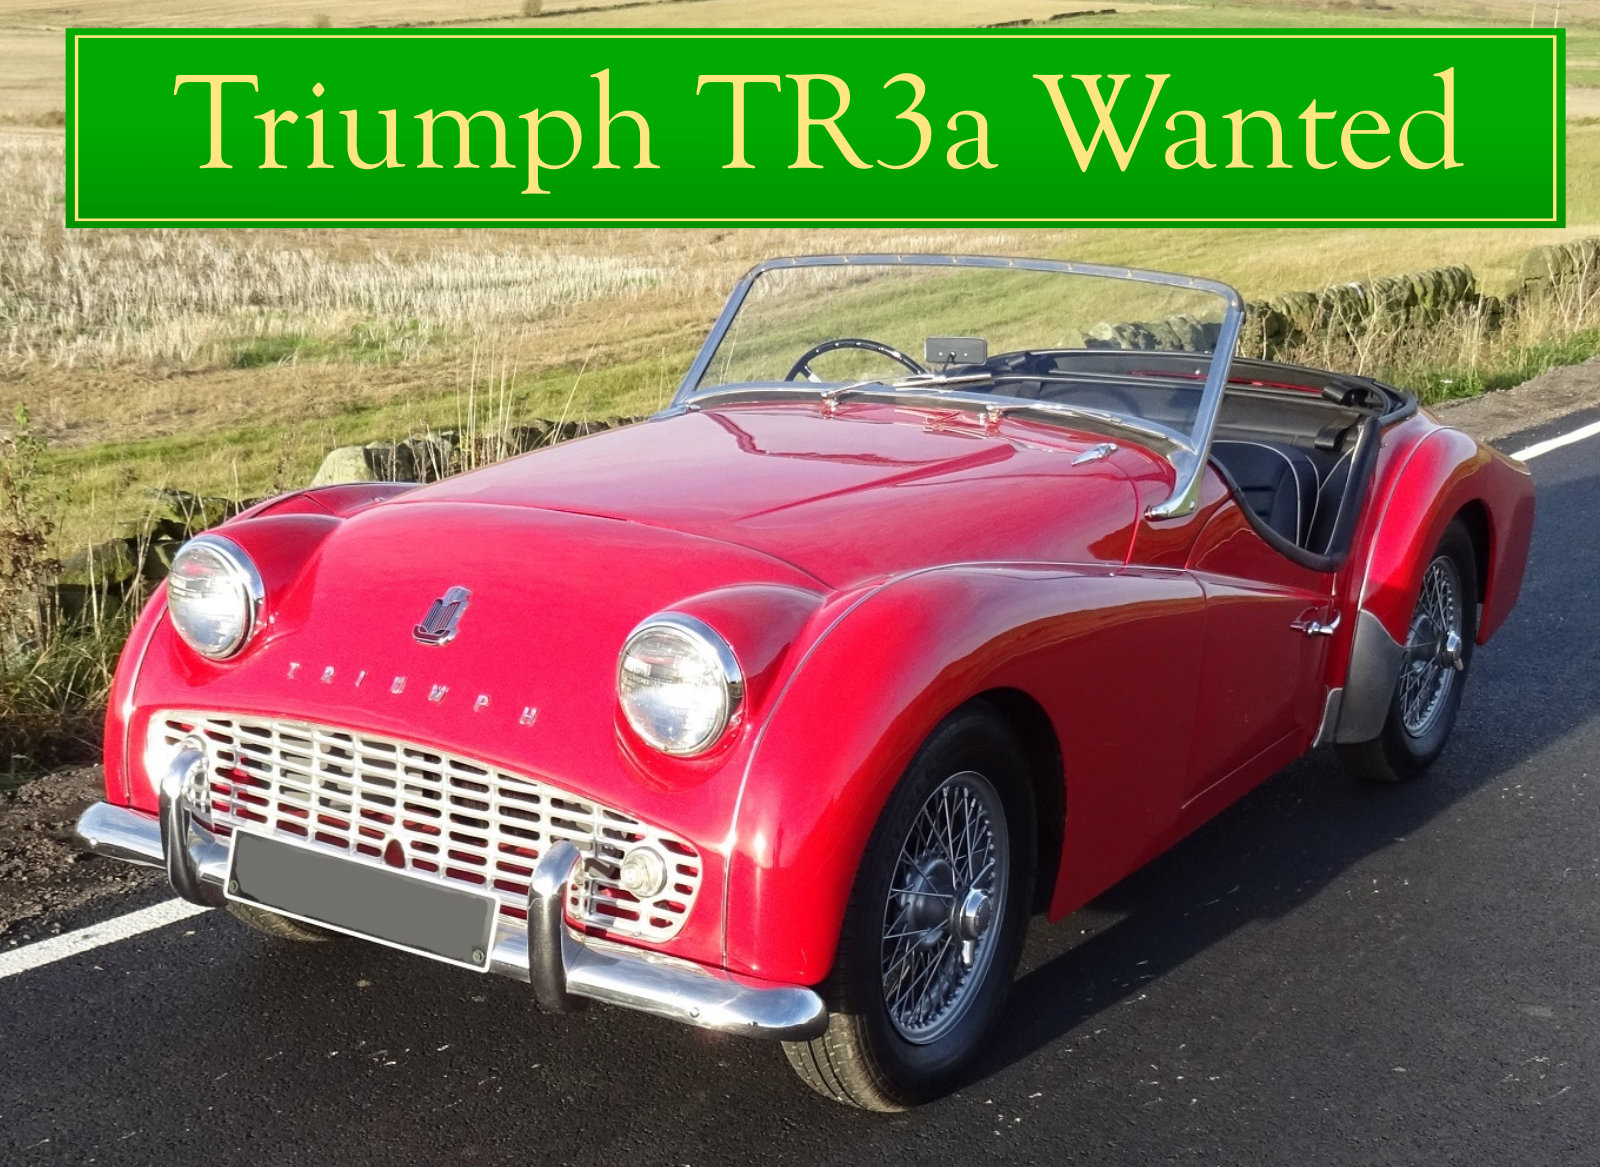 1956 TRIUMPH TR3 WANTED, CLASSIC CARS WANTED, QUICK PAYMENT (picture 2 of 6)